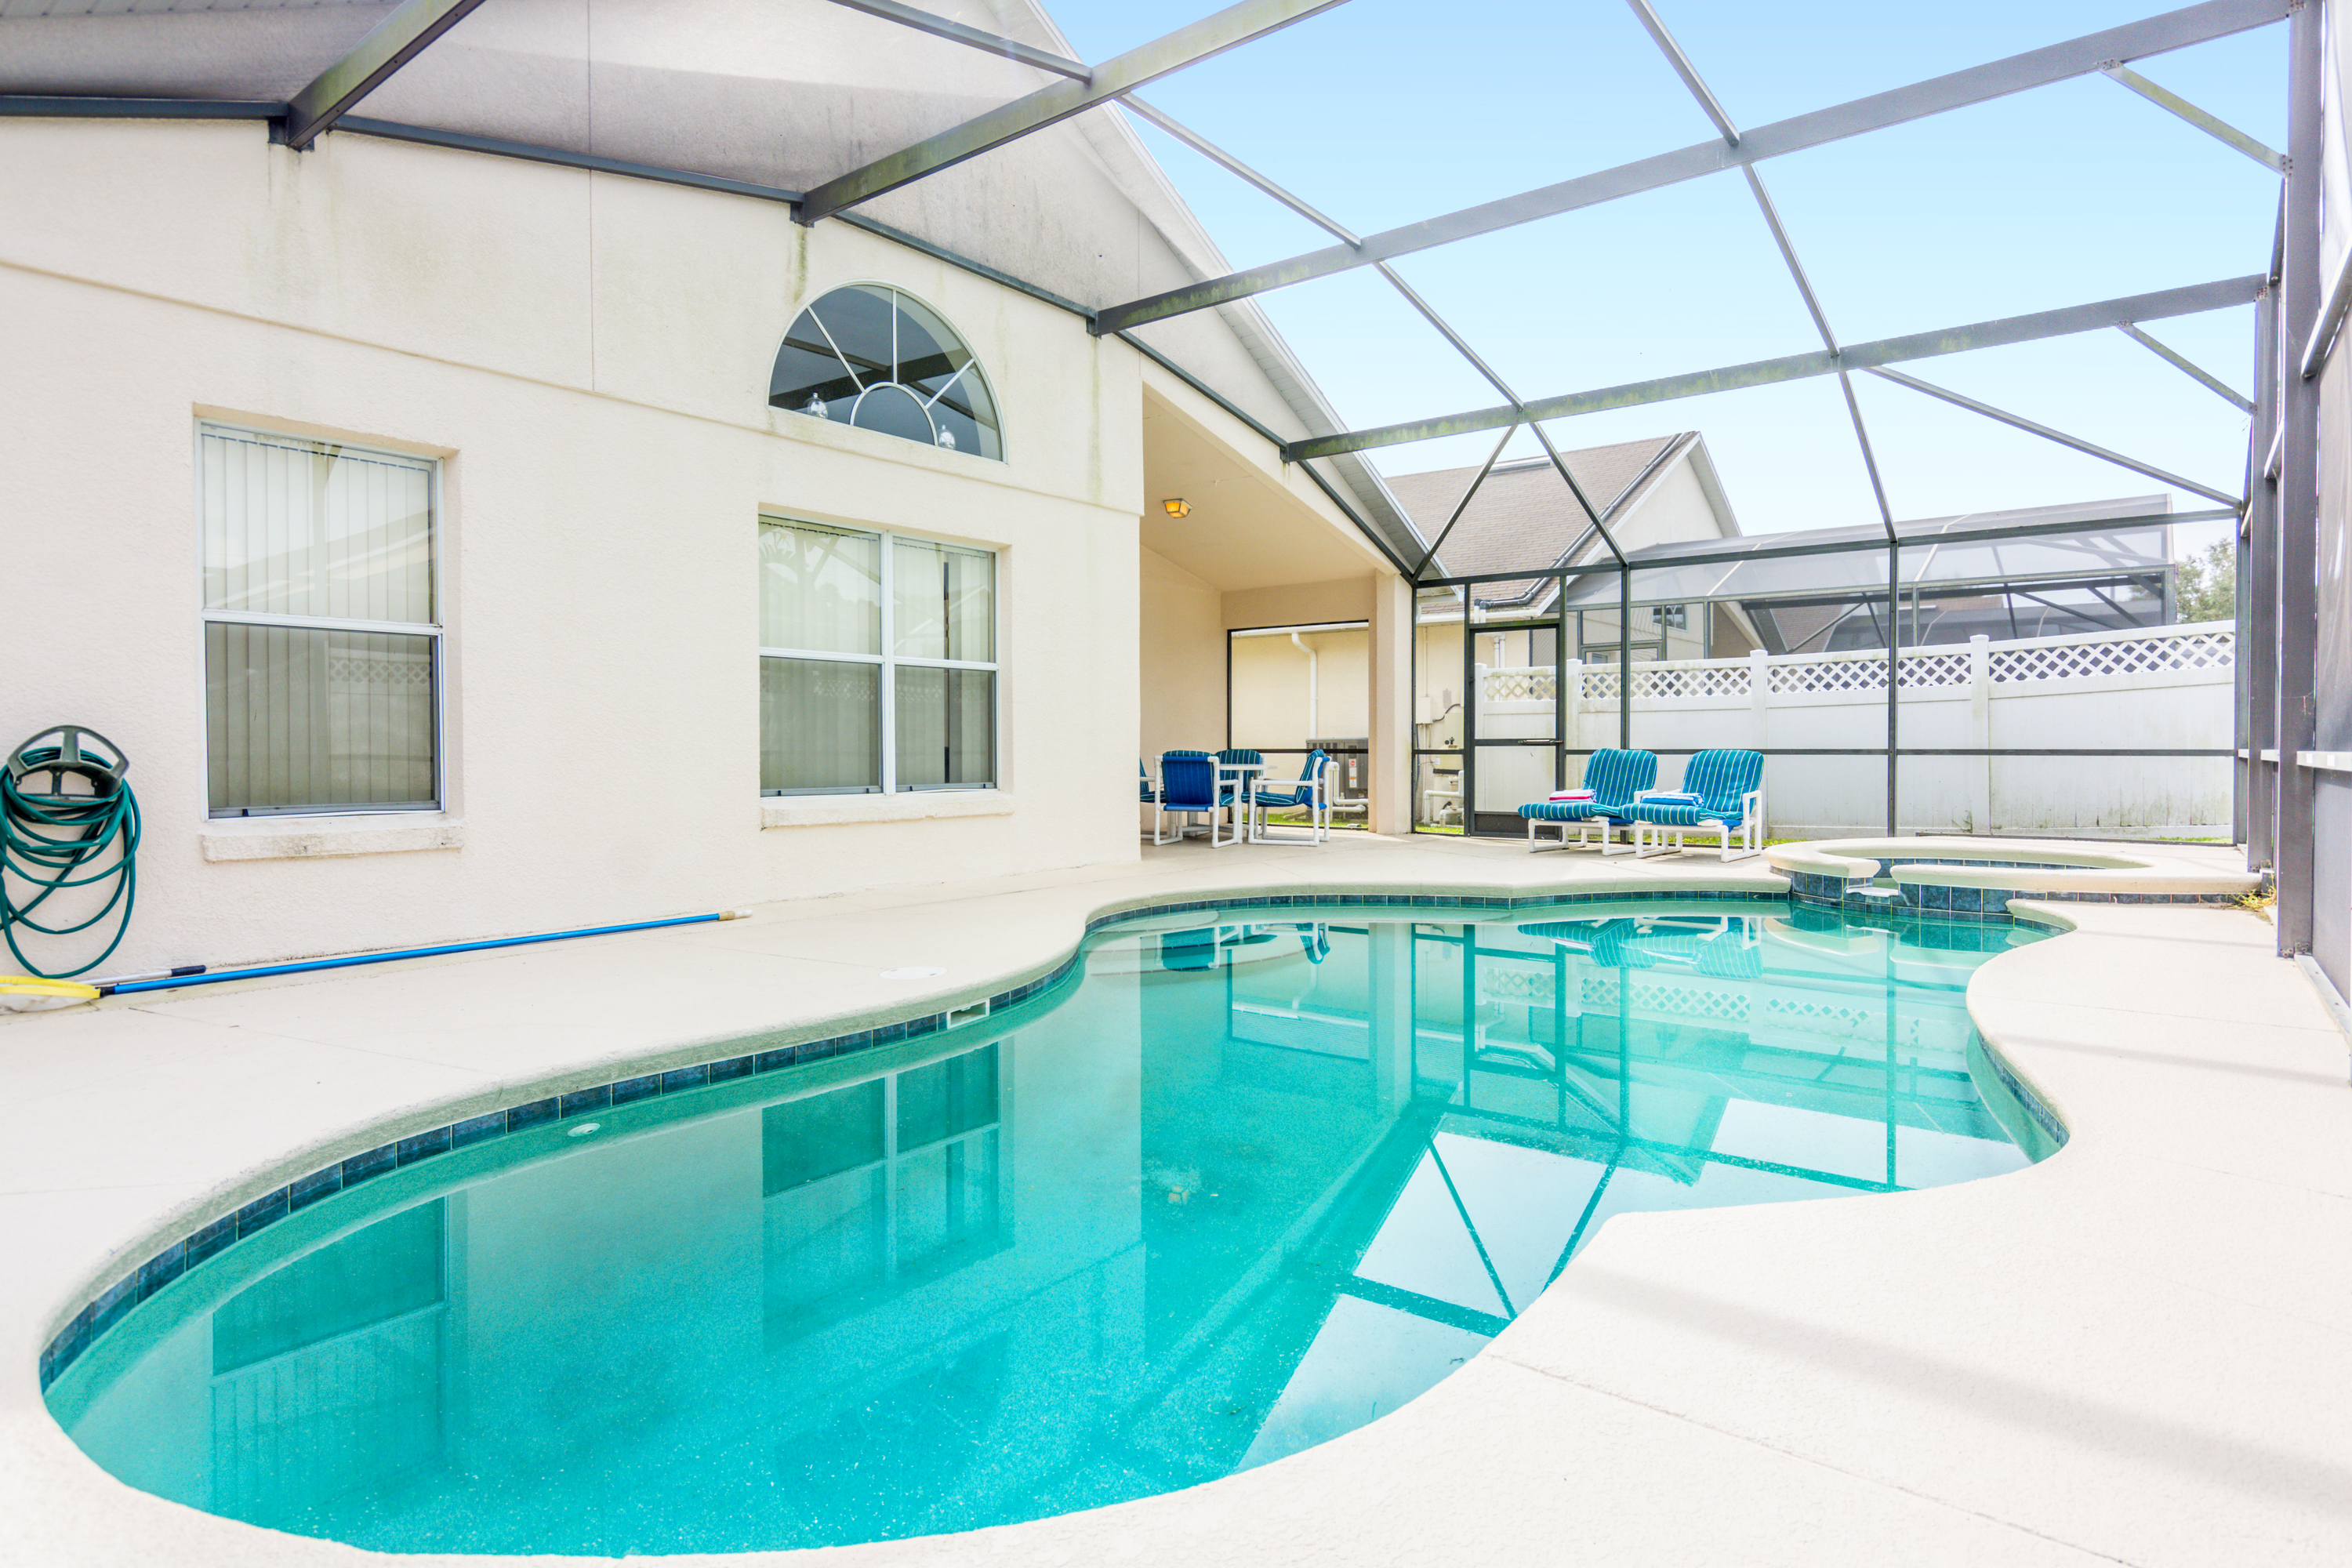 Apartment Dany s place - 4BED - Private Pool - Near Disney - Great House photo 20394134